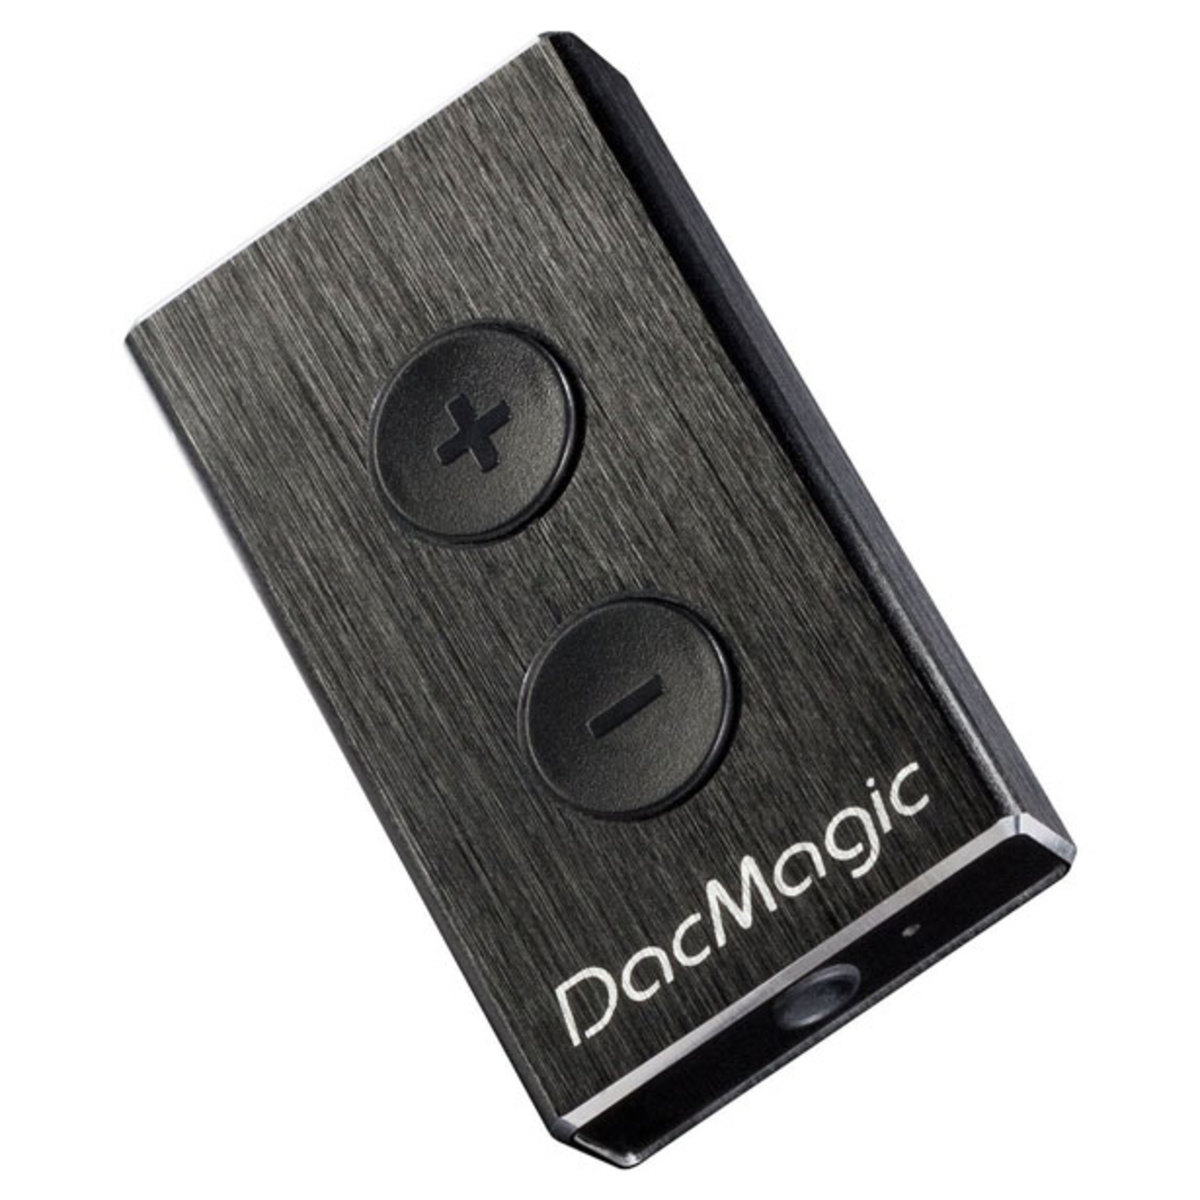 Cambridge Audio DacMagic XS USB Digital Audio Converter Review